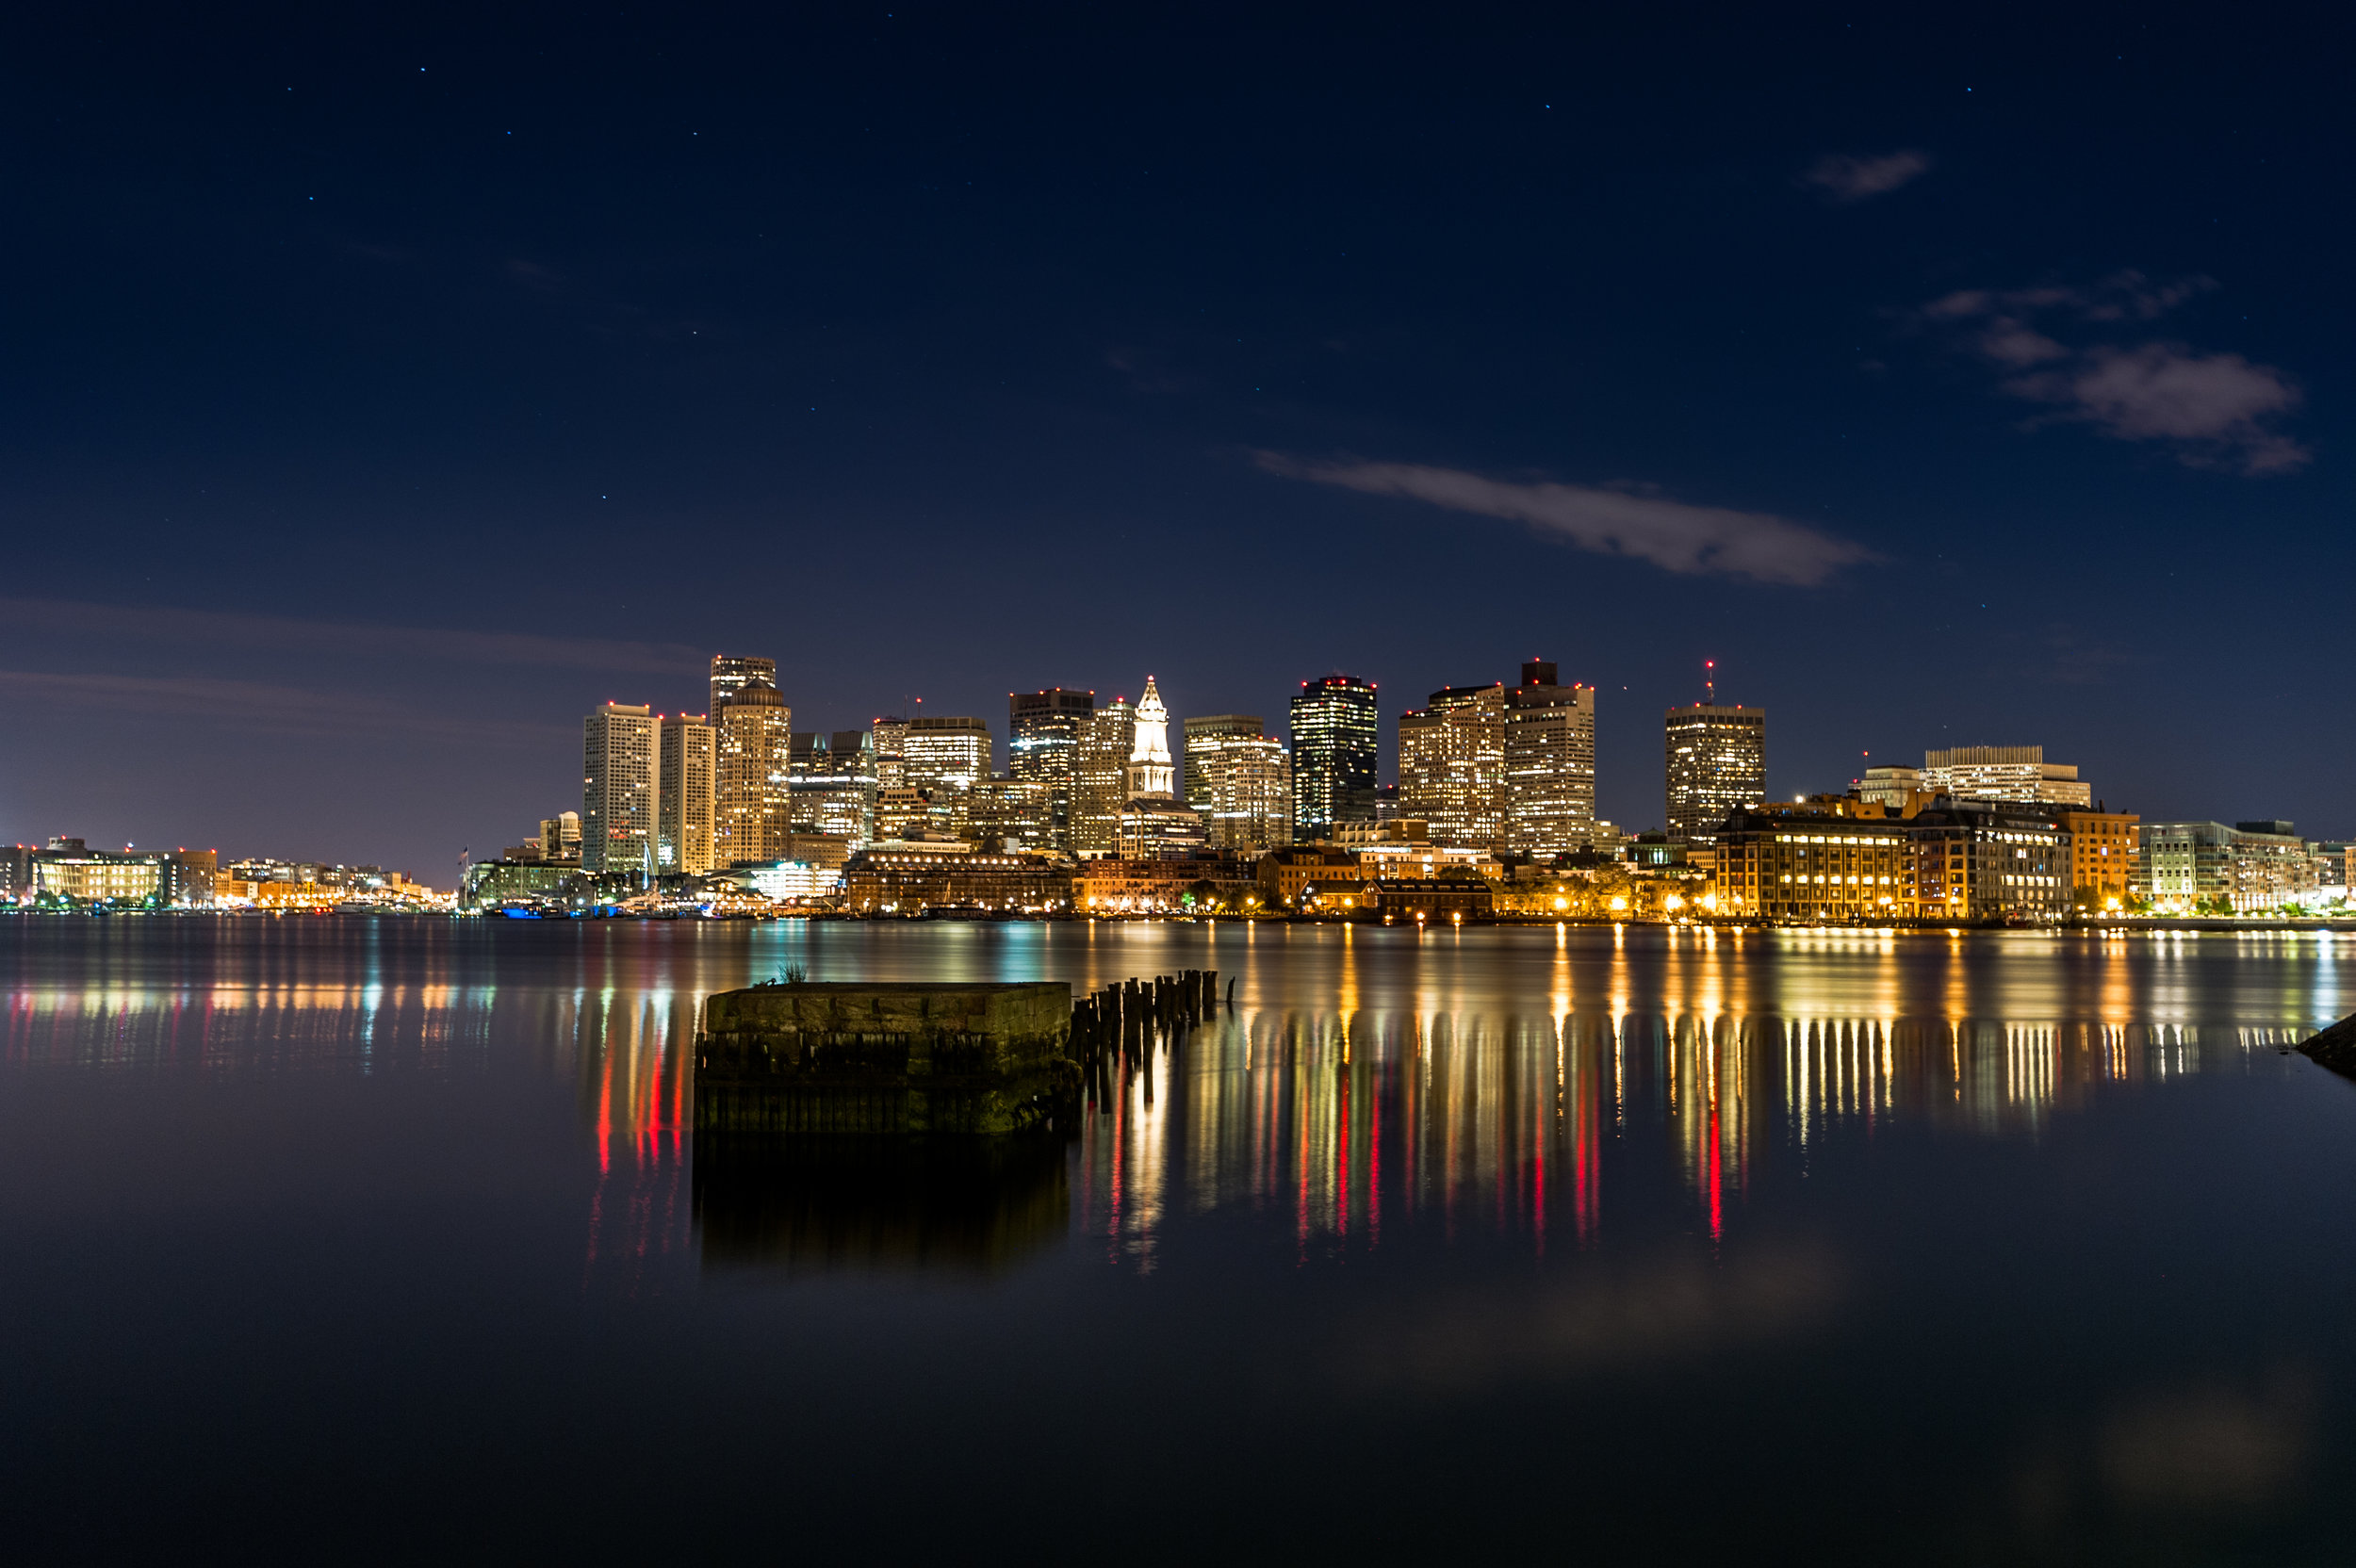 Boston Downtown (click the image to view full size)